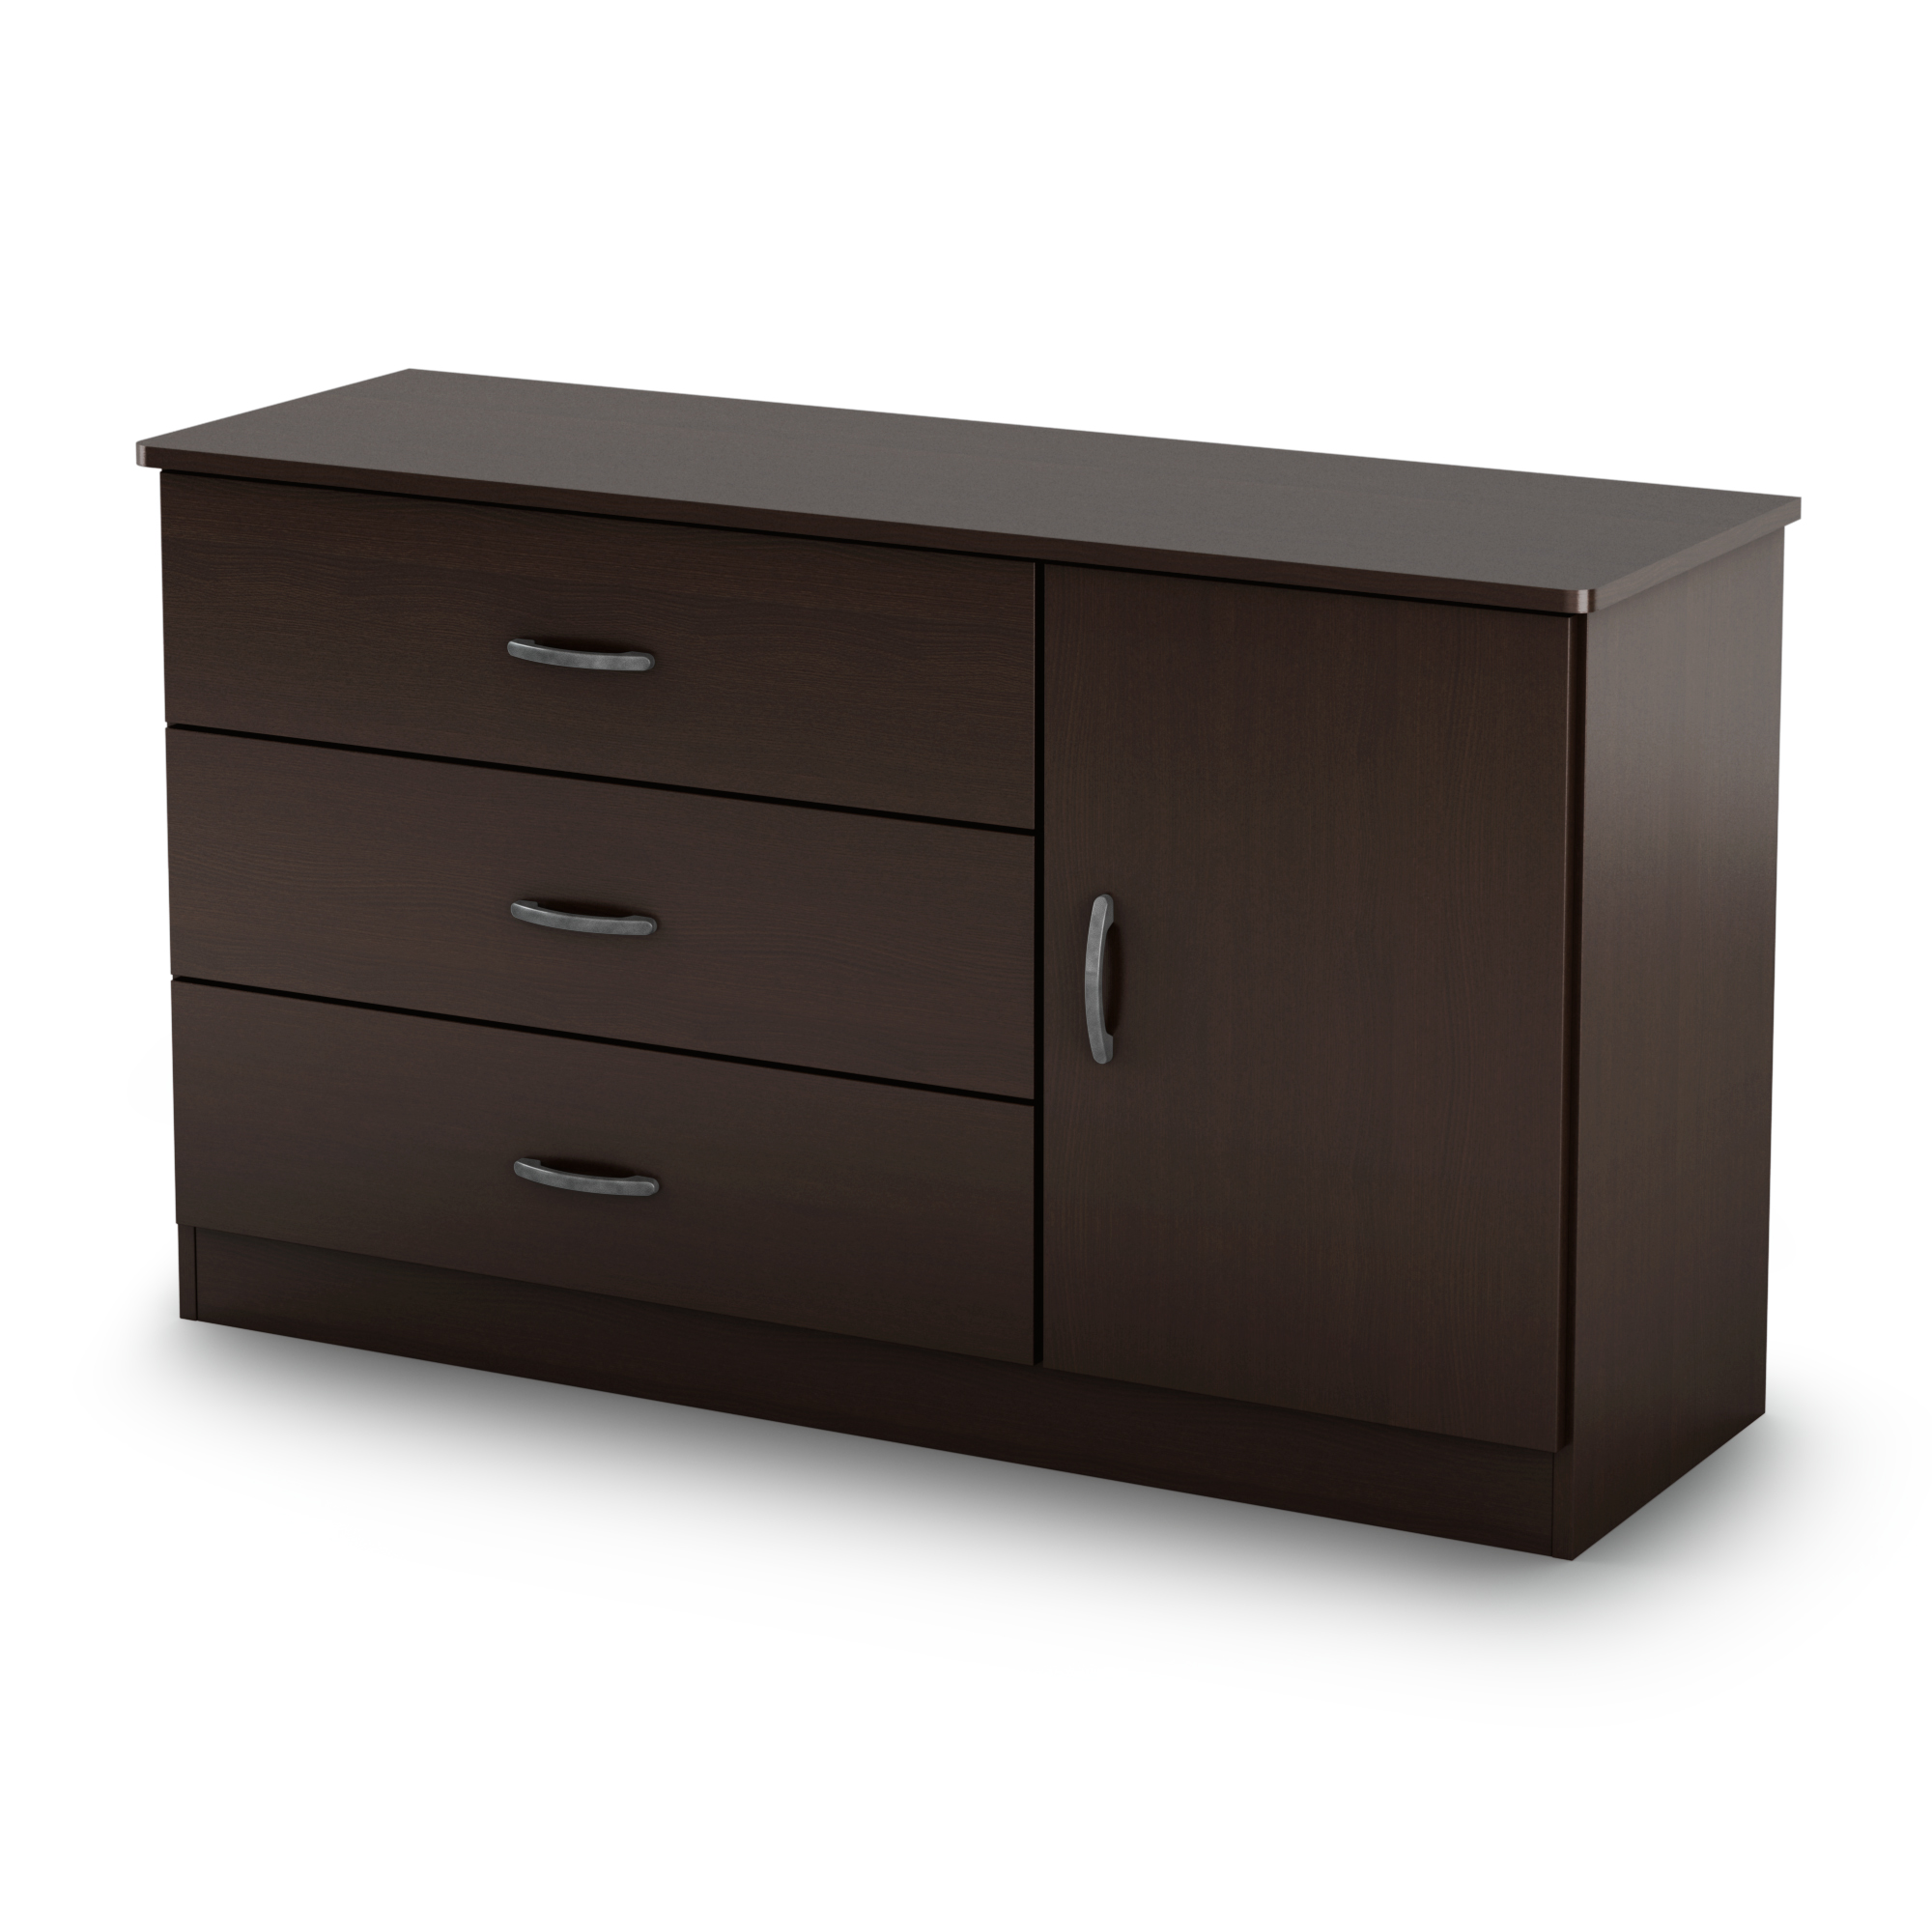 3 drawer dresser with door black white brown chest bedroom for Door furniture